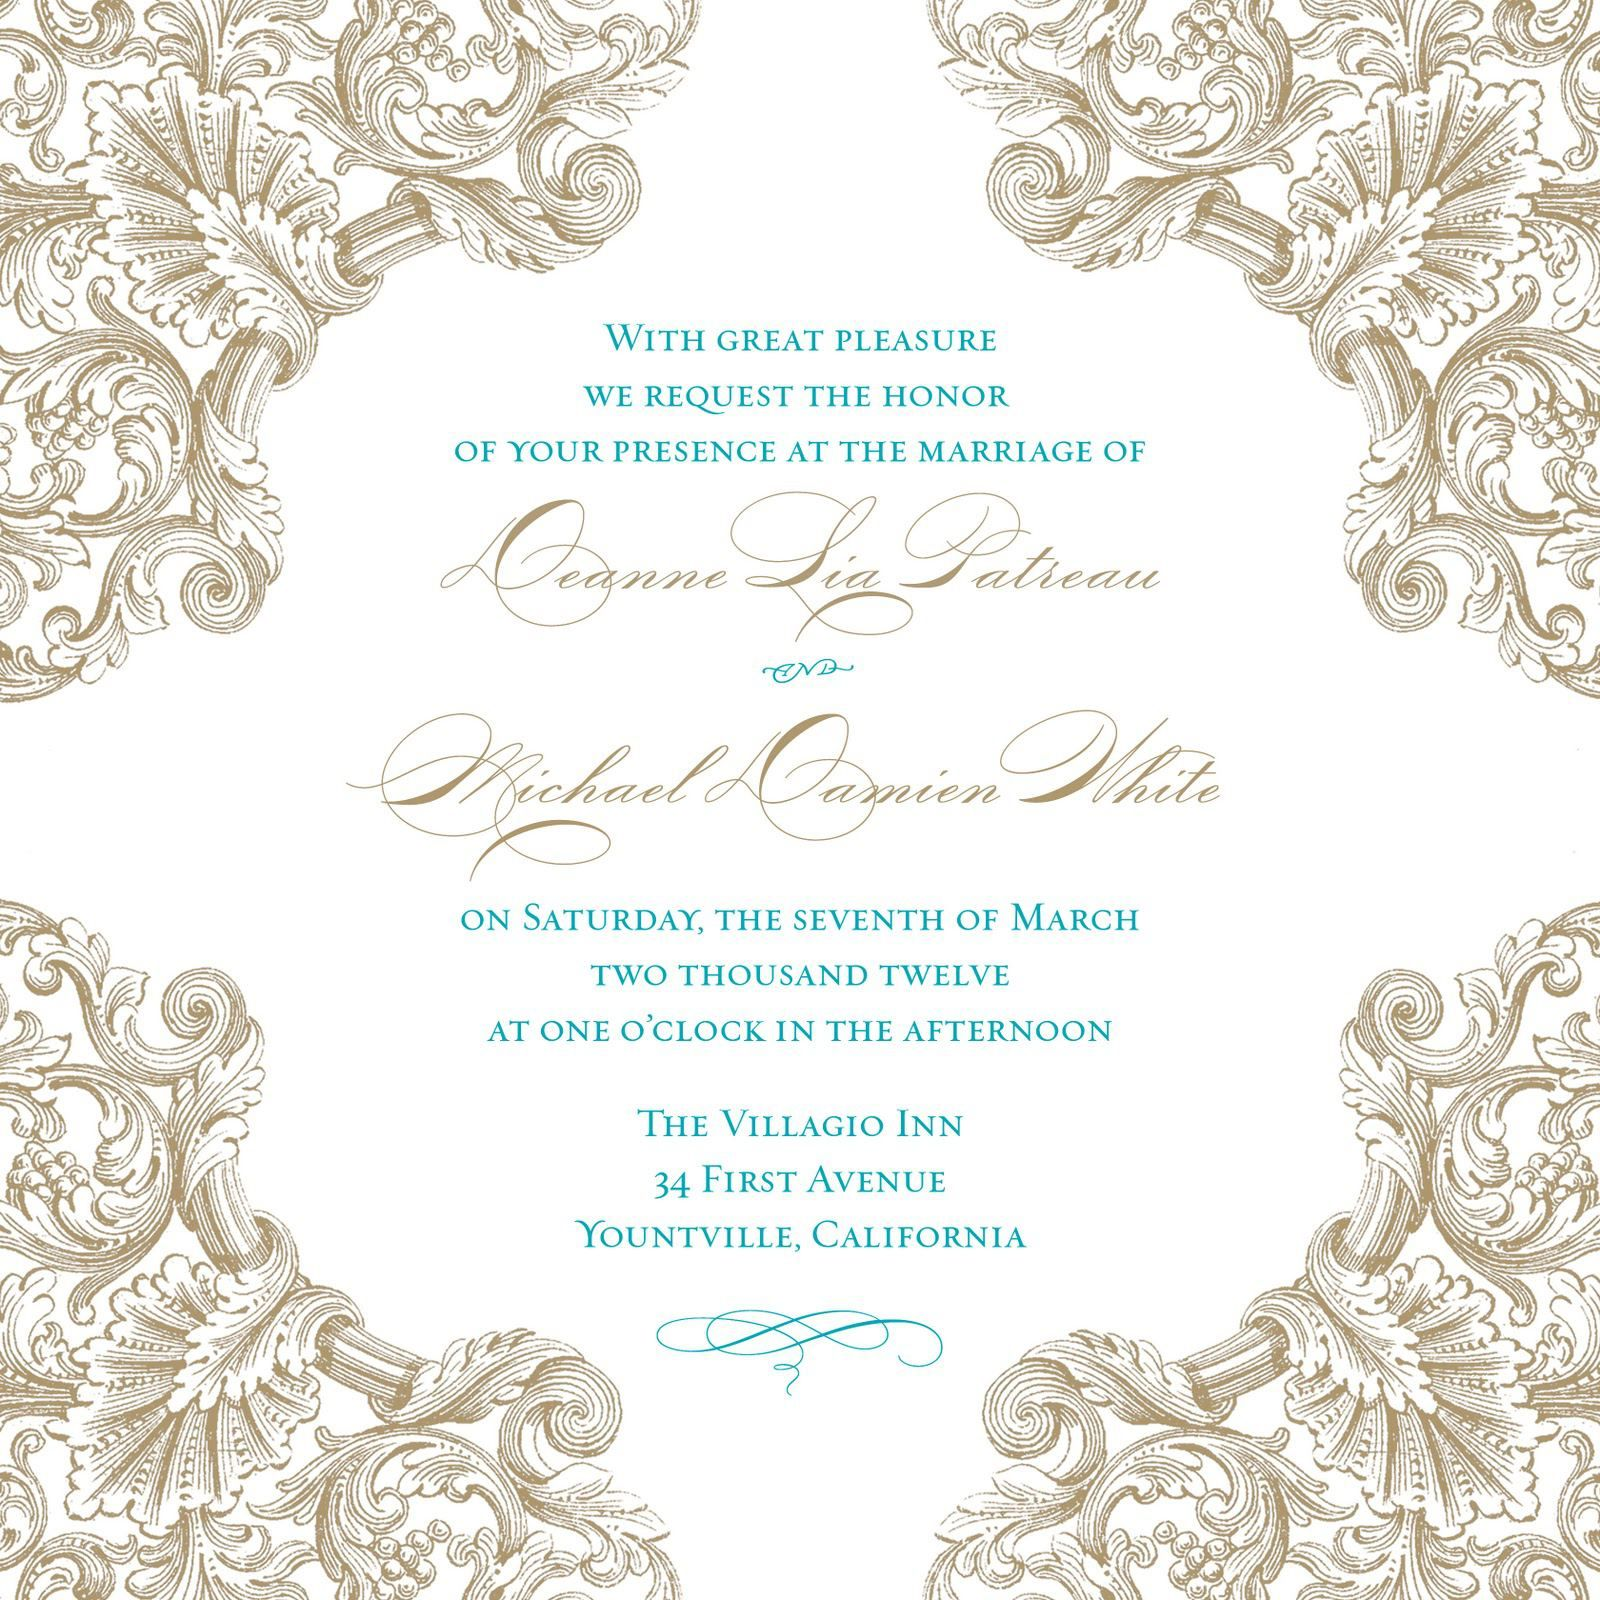 Invitation Template Word Brilliant Word Invitation Template  Word Invitation Template Free  Superb .